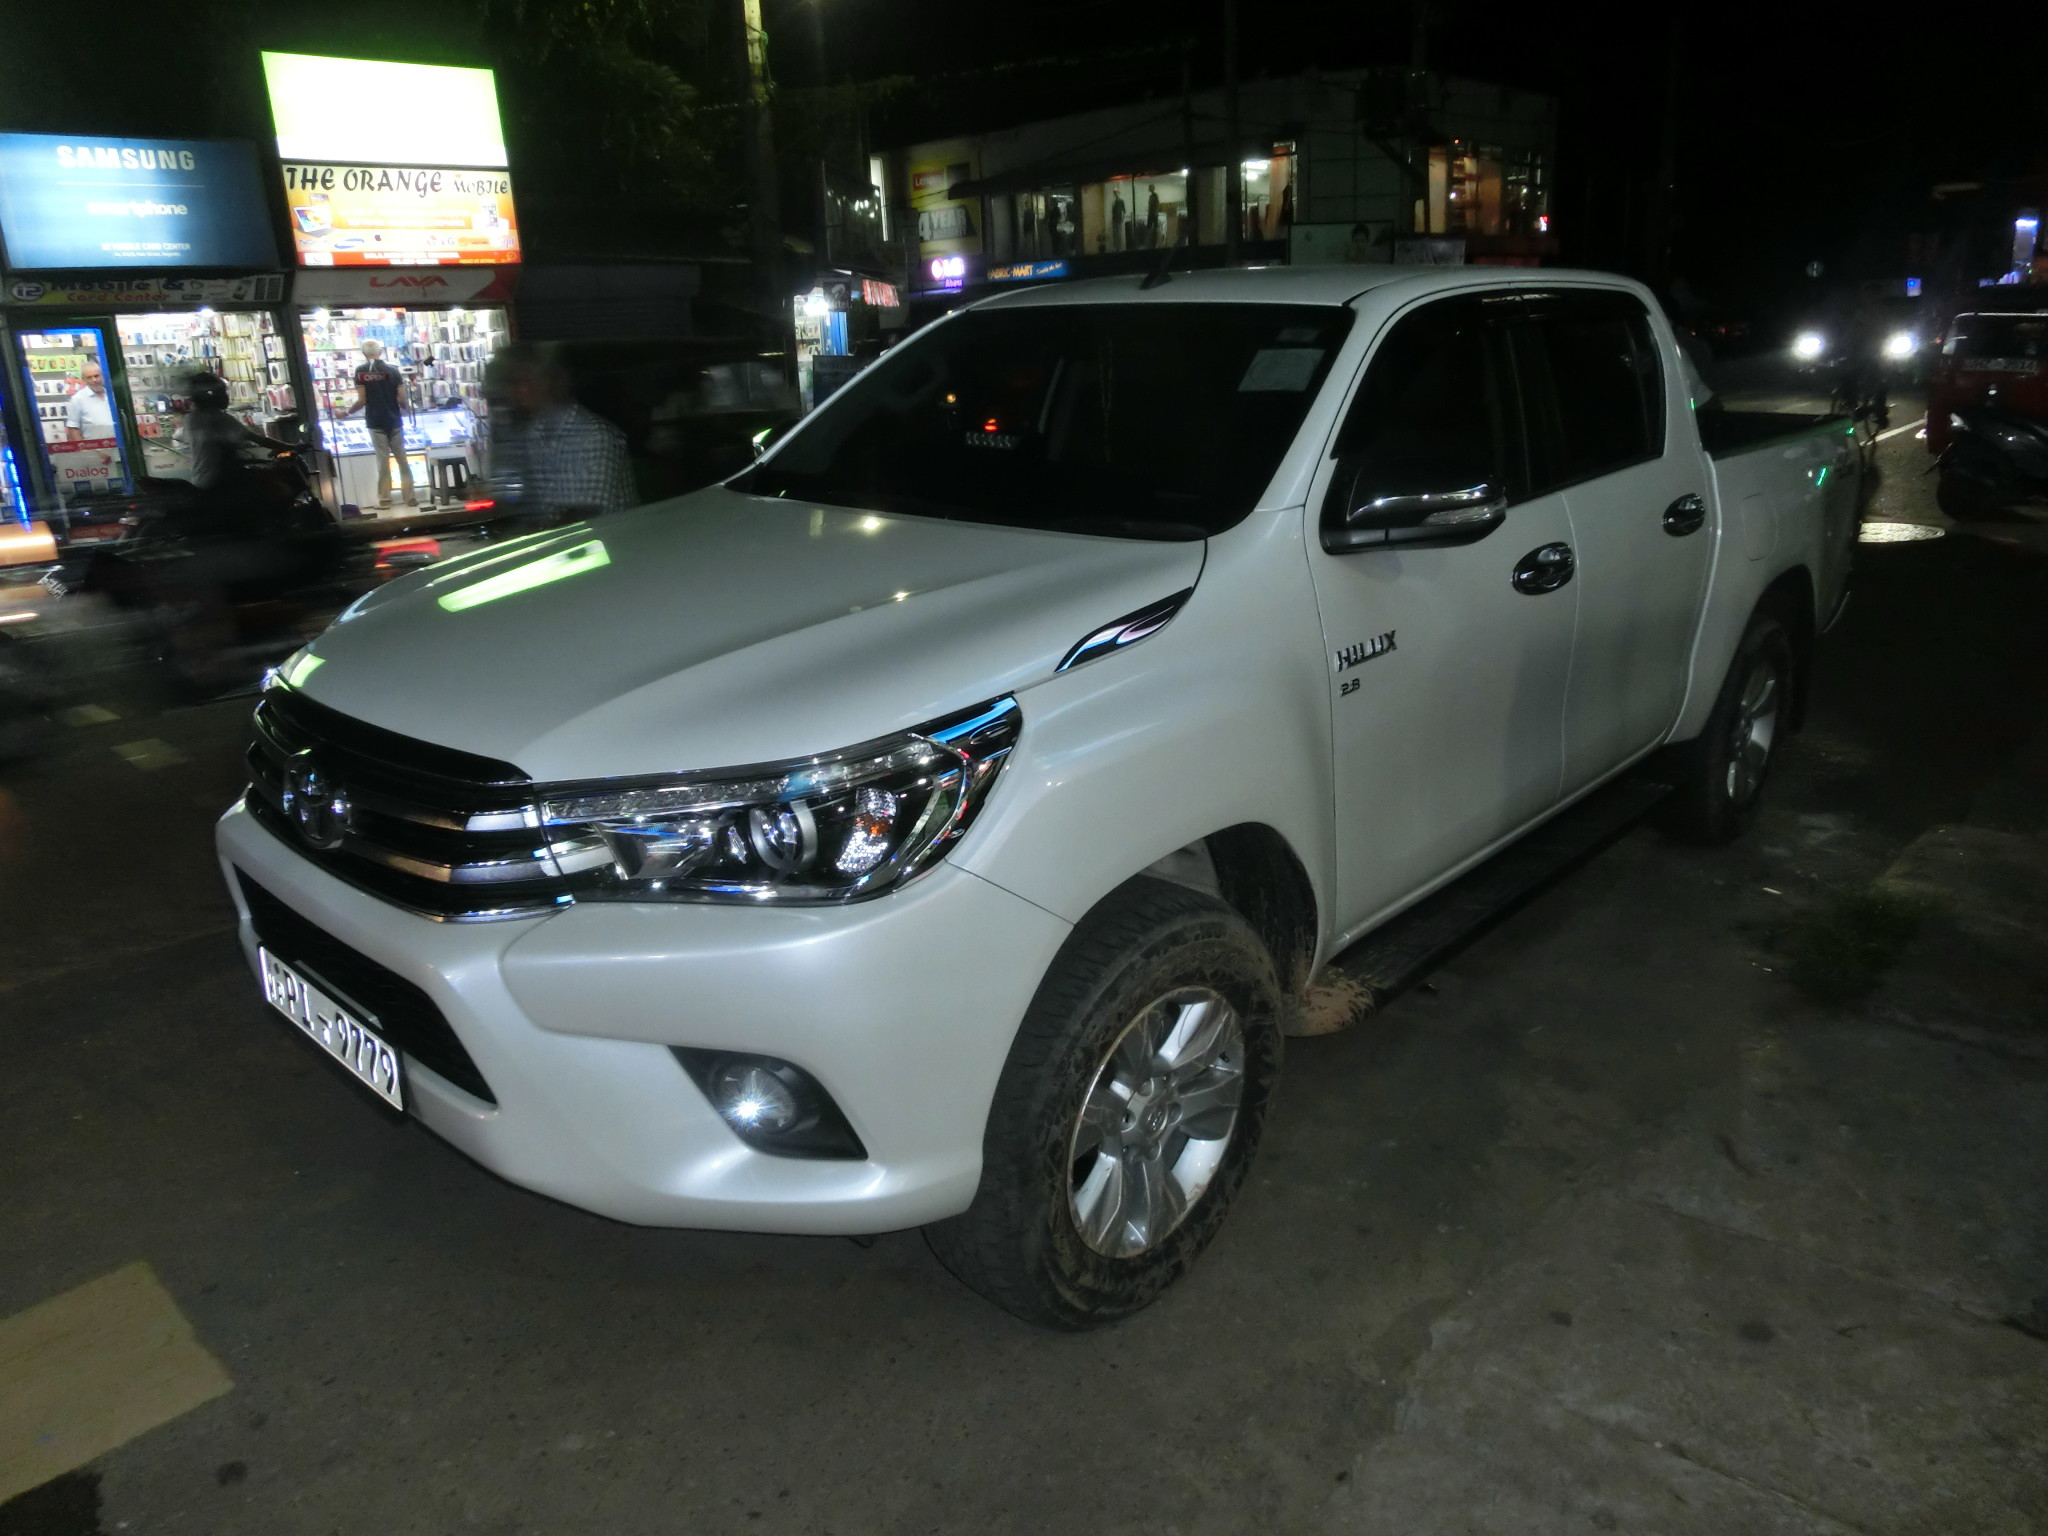 nouveau toyota hilux 2015 2016 hilux toyota forum marques. Black Bedroom Furniture Sets. Home Design Ideas